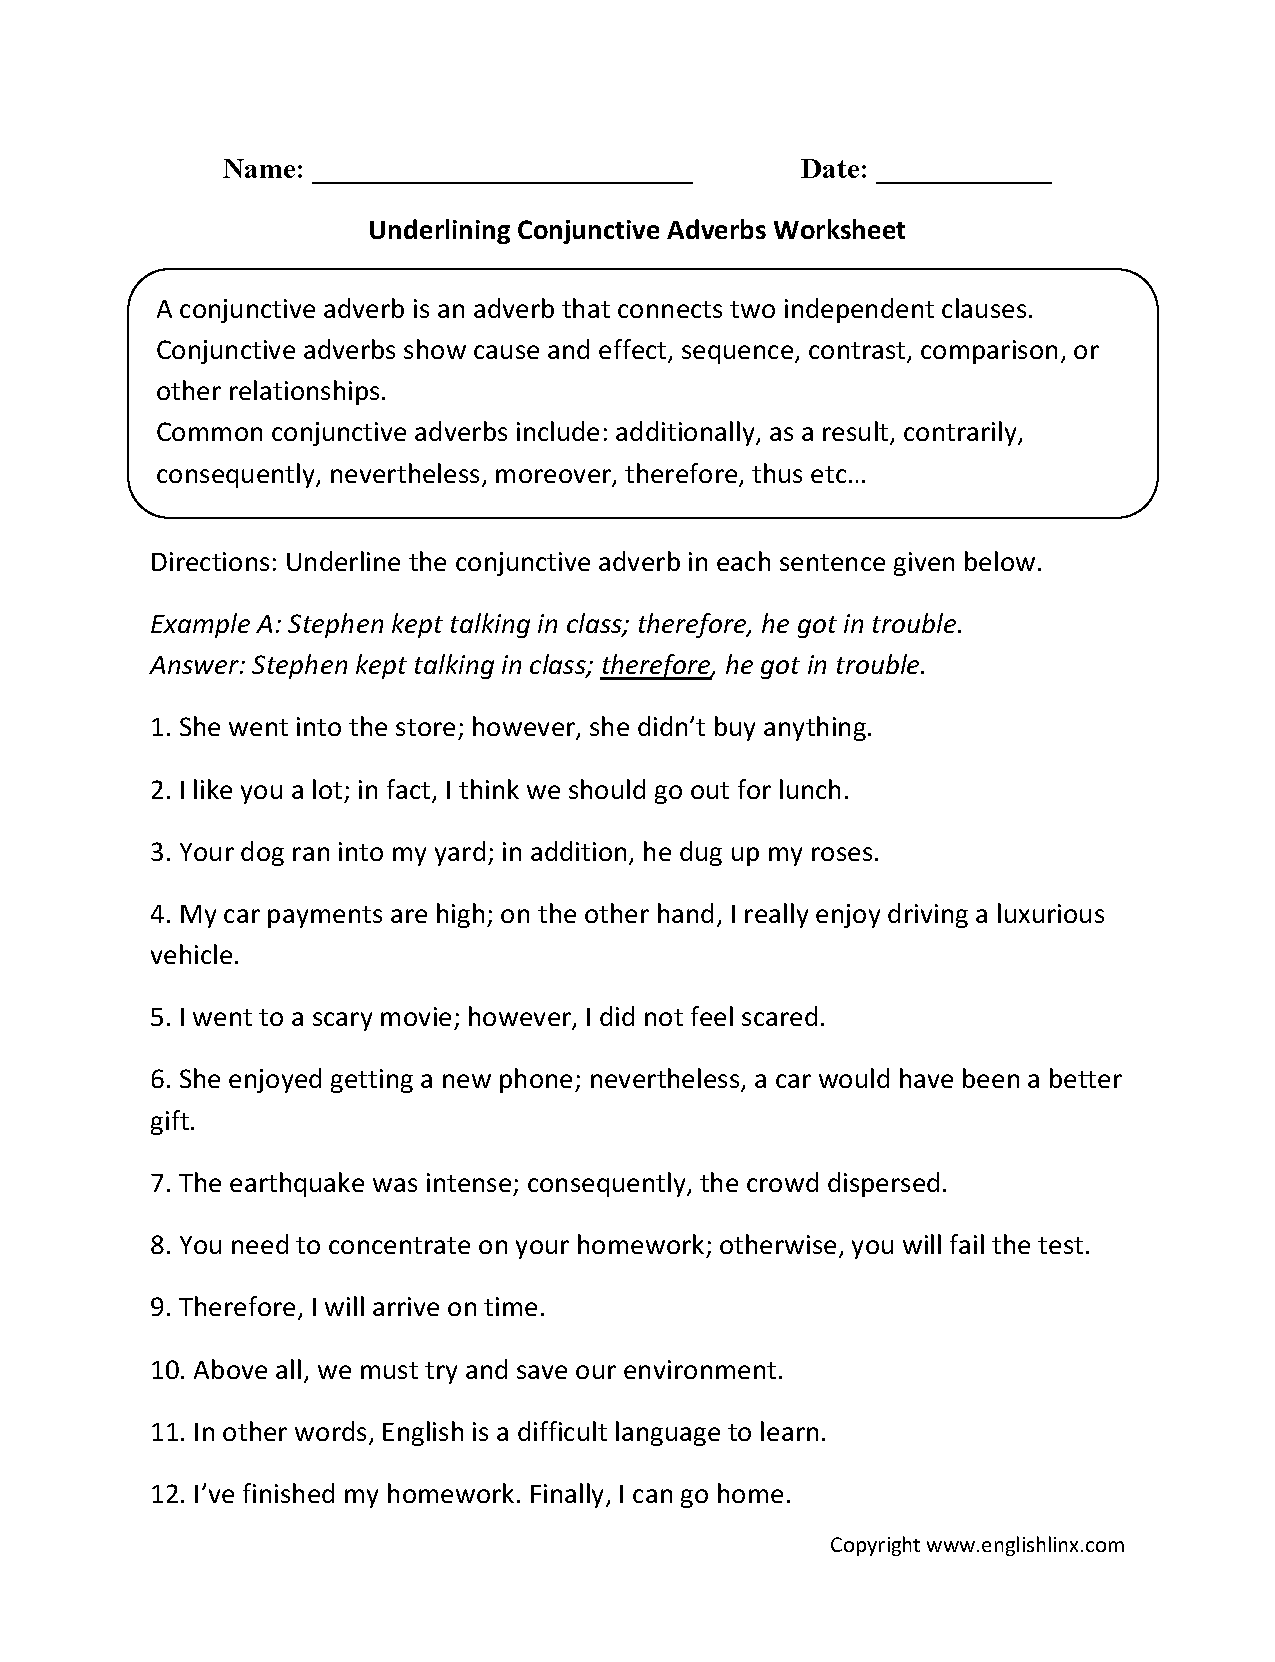 Proatmealus  Surprising Englishlinxcom  Conjunctions Worksheets With Handsome Worksheet With Easy On The Eye First Grade Free Worksheets Printables Also  X Table Worksheet In Addition Number Patterns Worksheets Ks And Grade  Fractions Worksheets As Well As Ks Worksheets Maths Additionally Word Equation Worksheet Chemistry From Englishlinxcom With Proatmealus  Handsome Englishlinxcom  Conjunctions Worksheets With Easy On The Eye Worksheet And Surprising First Grade Free Worksheets Printables Also  X Table Worksheet In Addition Number Patterns Worksheets Ks From Englishlinxcom